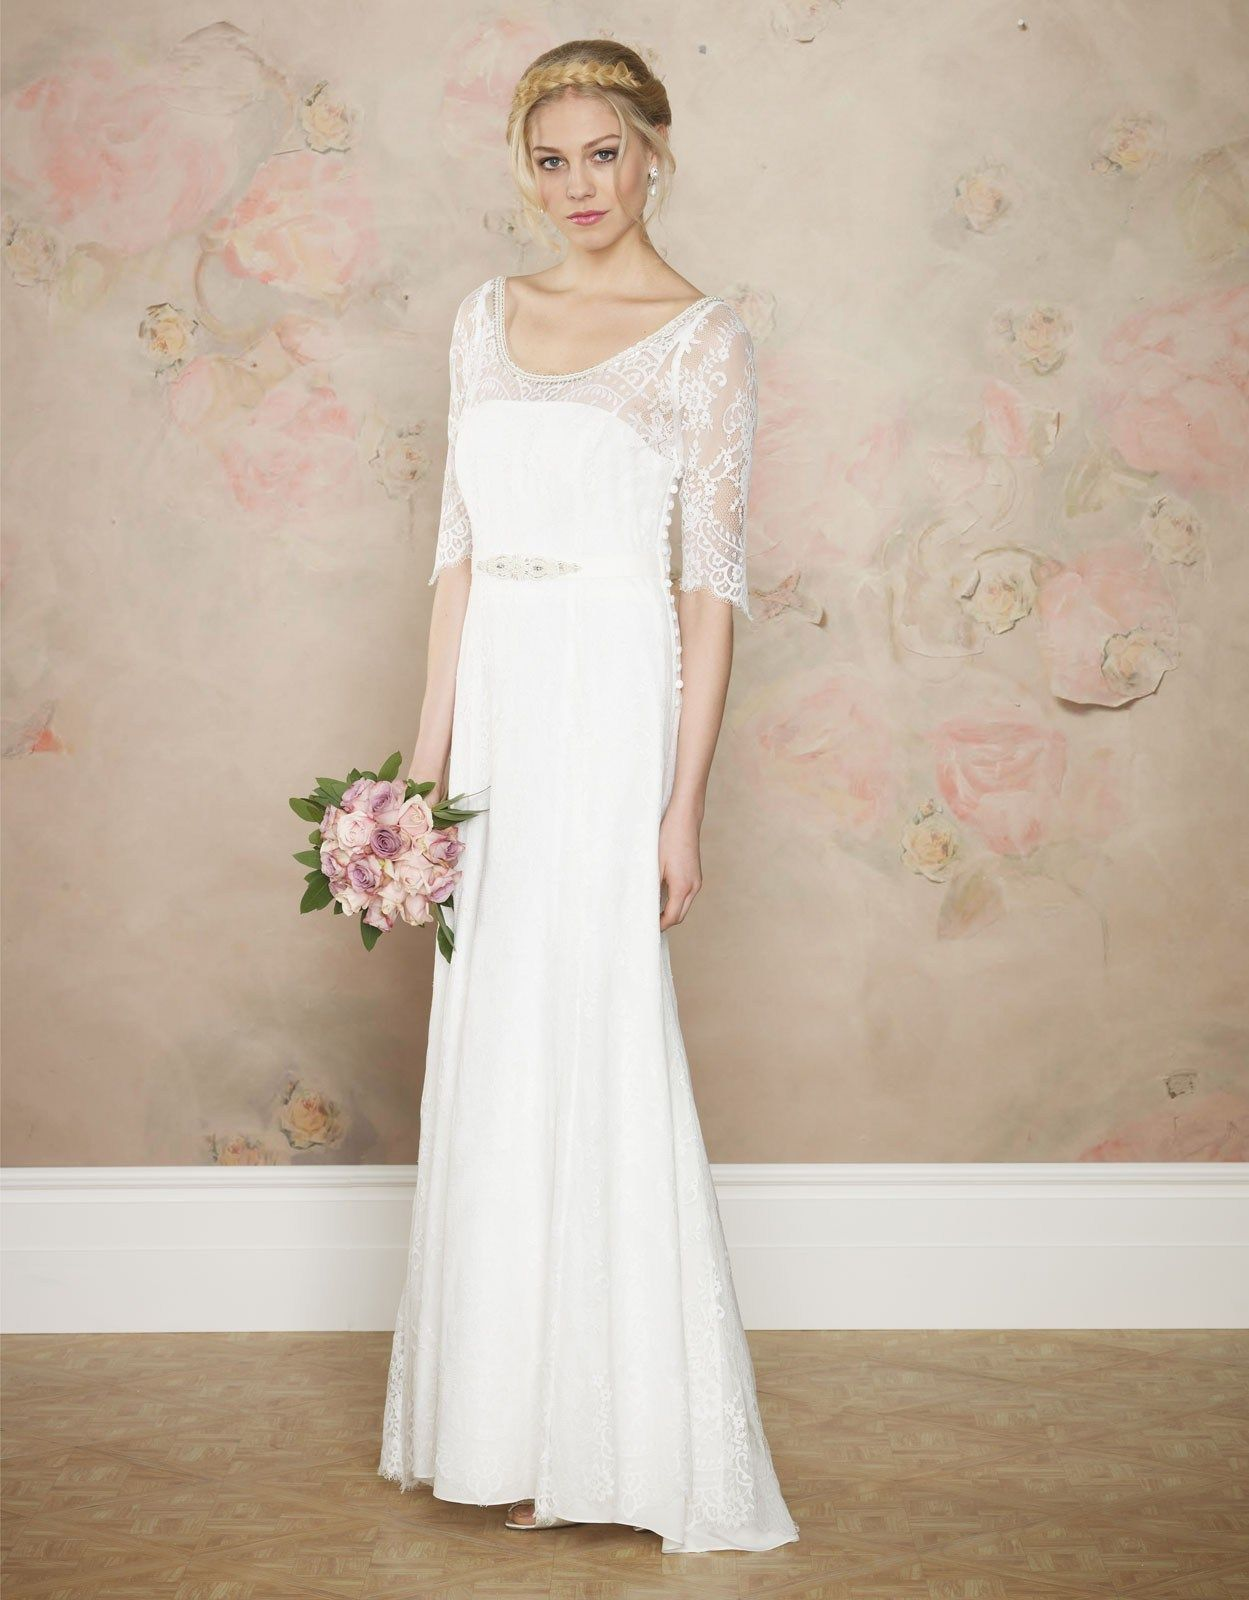 Casual wedding dress with sleeves  Casual Wedding Dresses for Second   Wedding dress  Pinterest